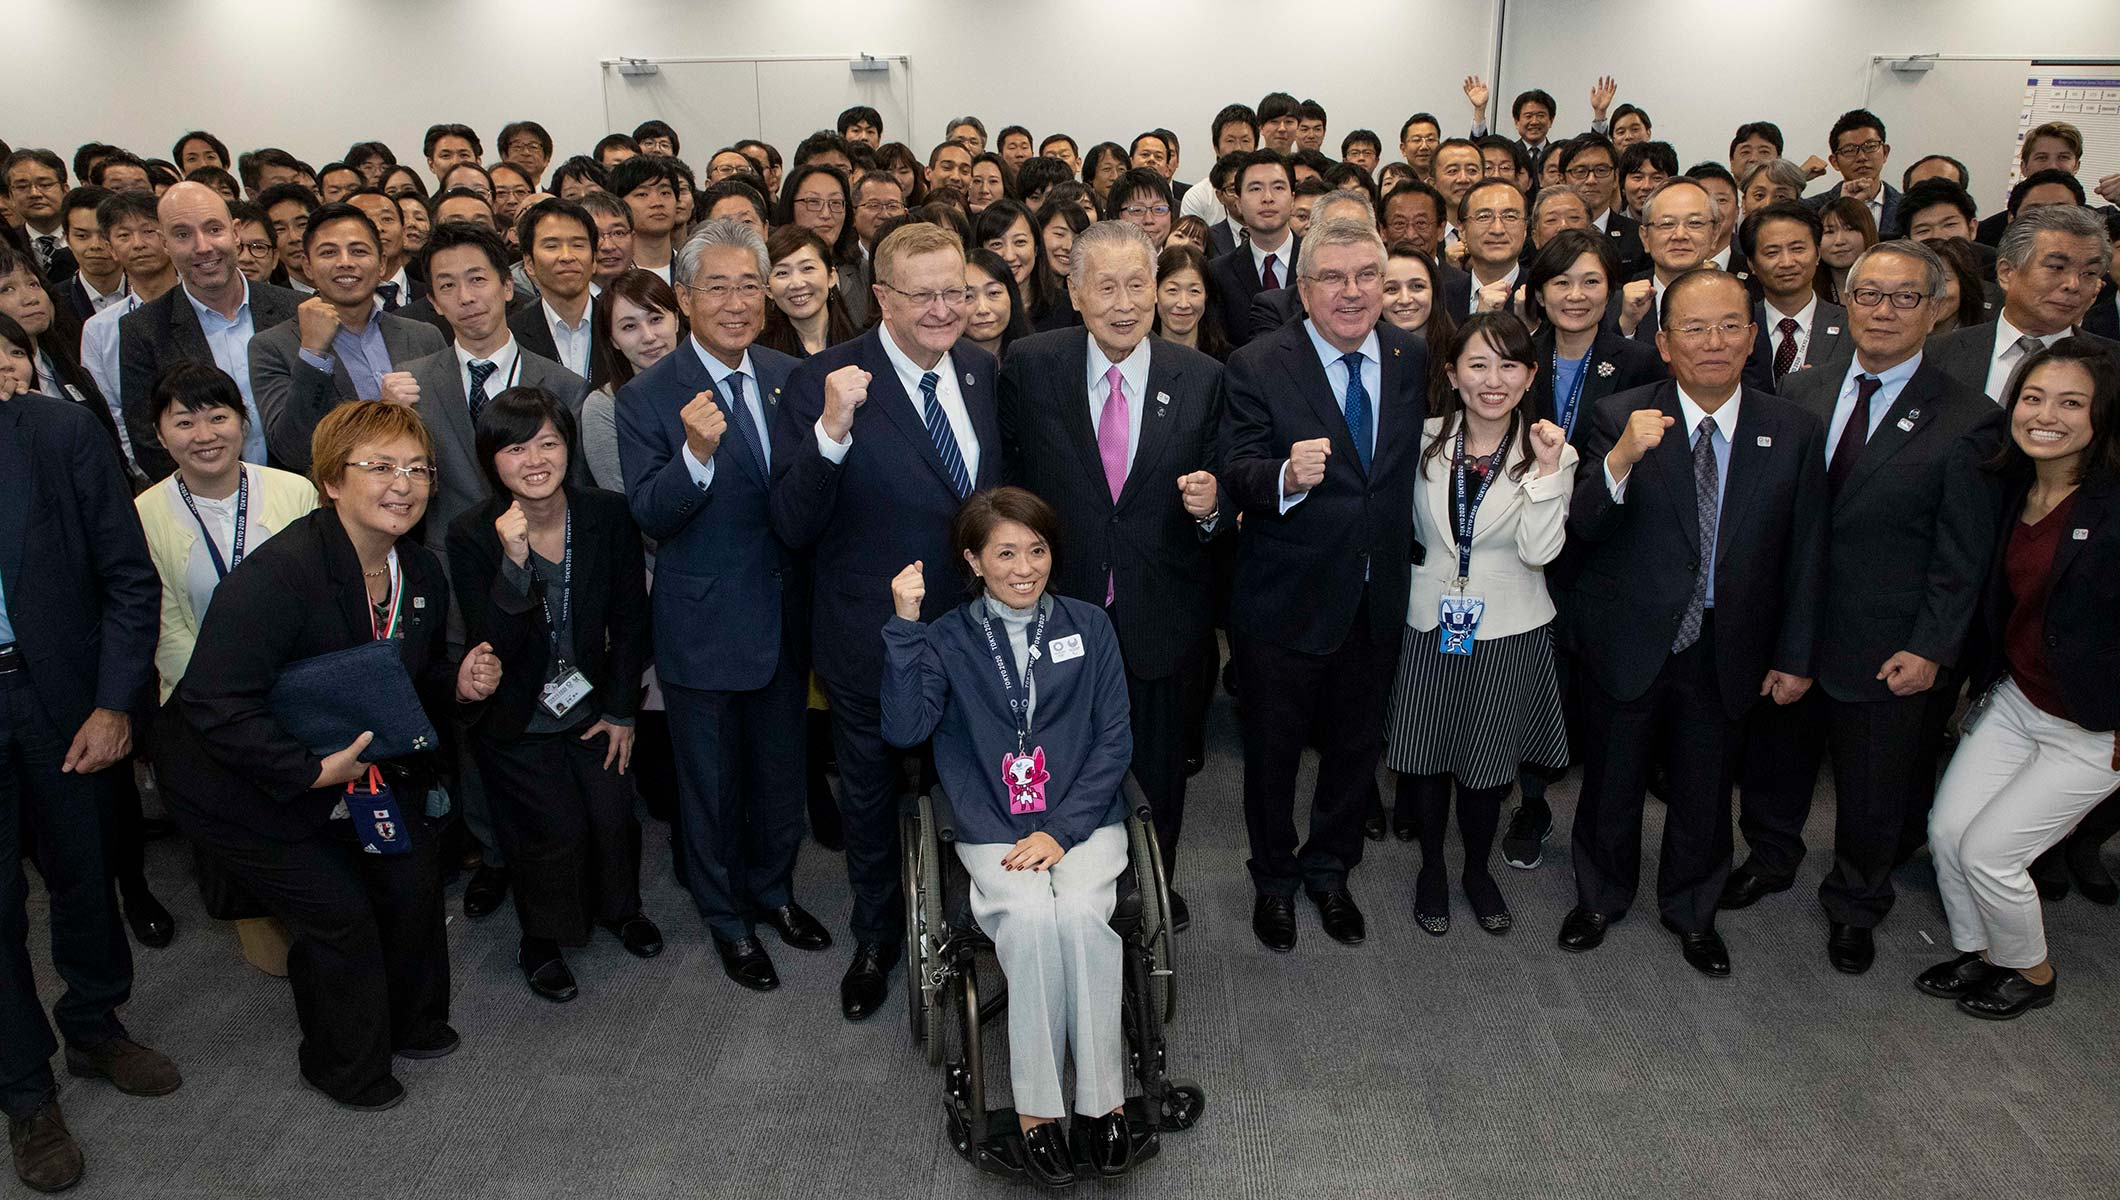 IOC President visits Tokyo 2020 and praises progress of preparations for Olympic Games